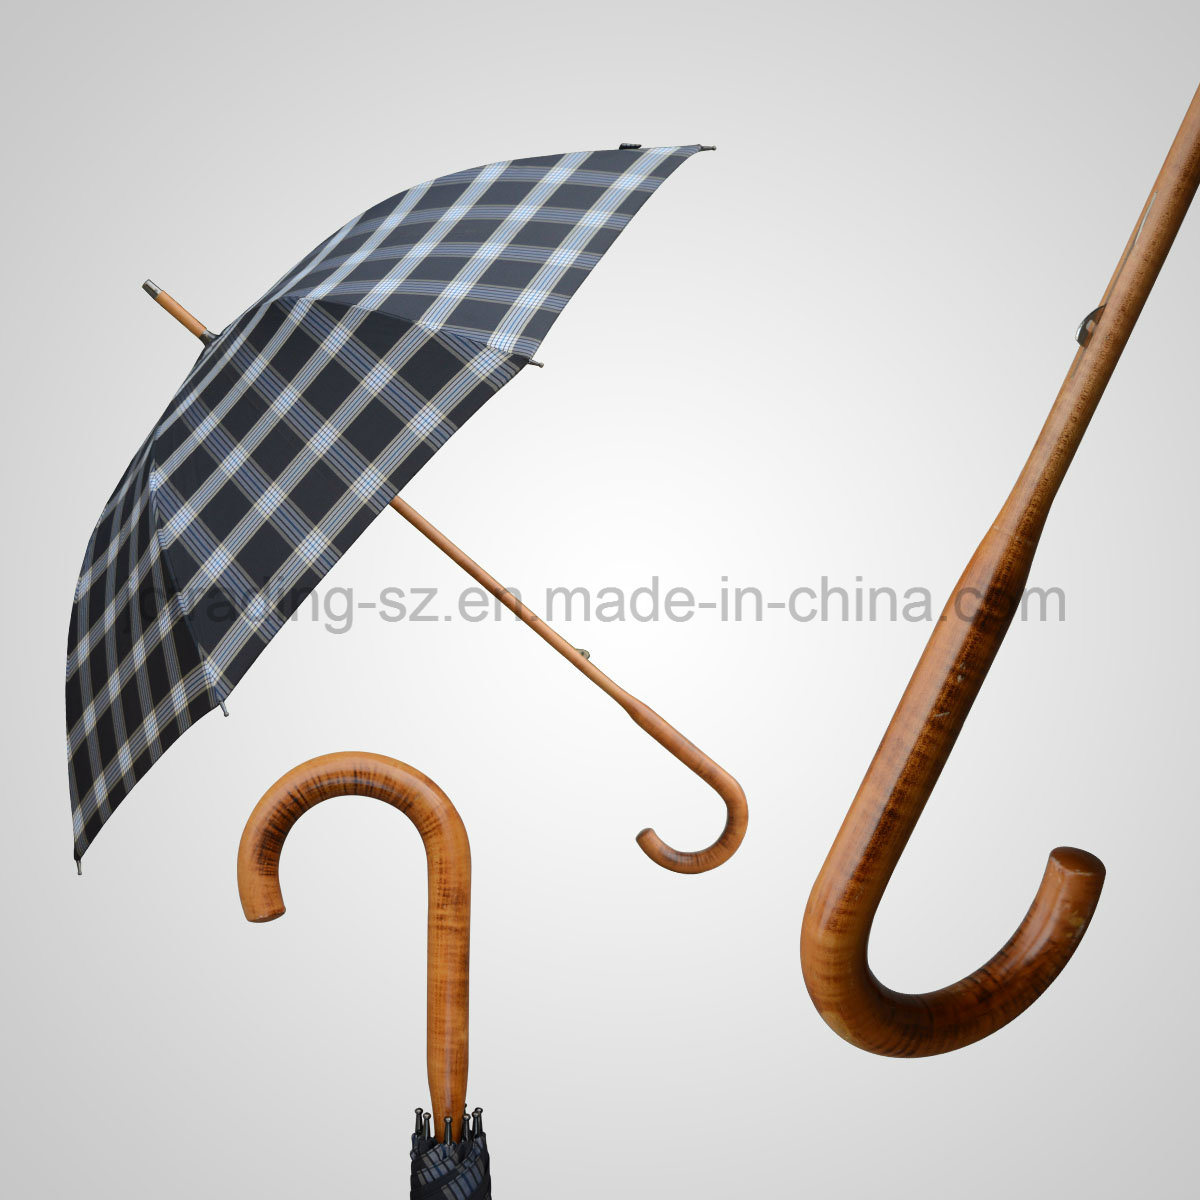 Classic Wooden Handle and Shaft Luxury Manual Rain/Sun Umbrella (JL-AQT132)